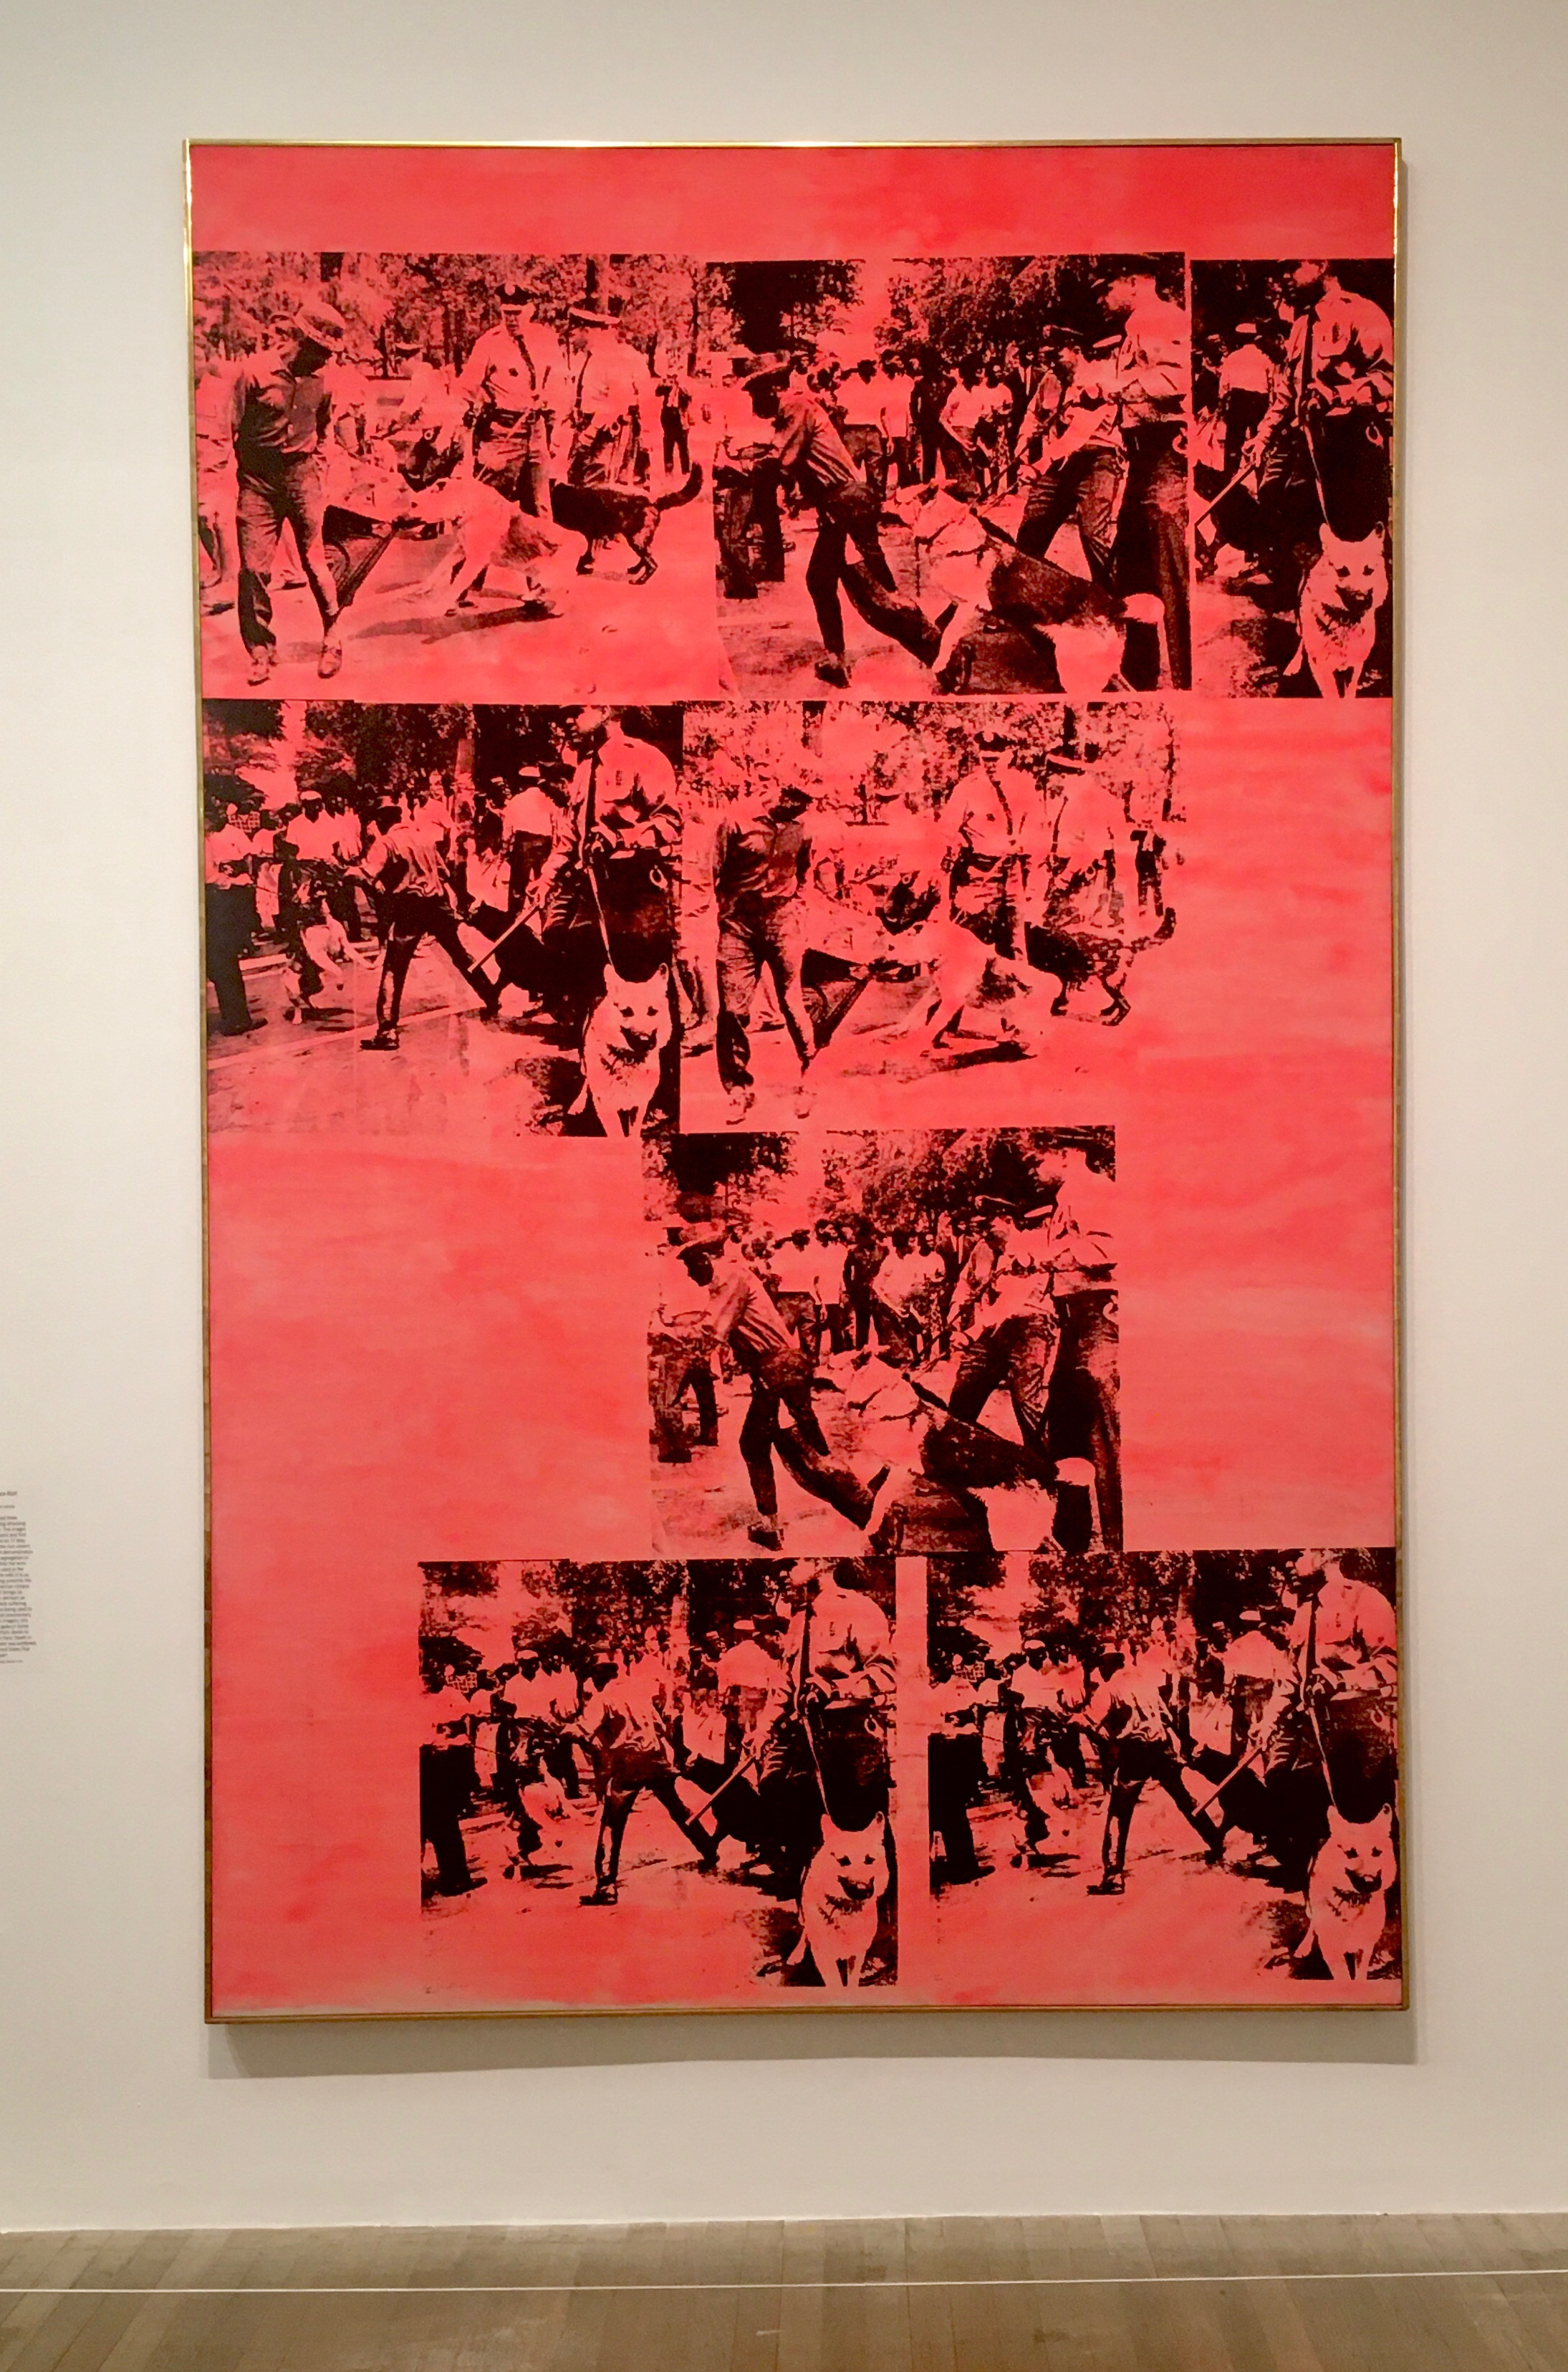 Red Race Riot, Andy Warhol